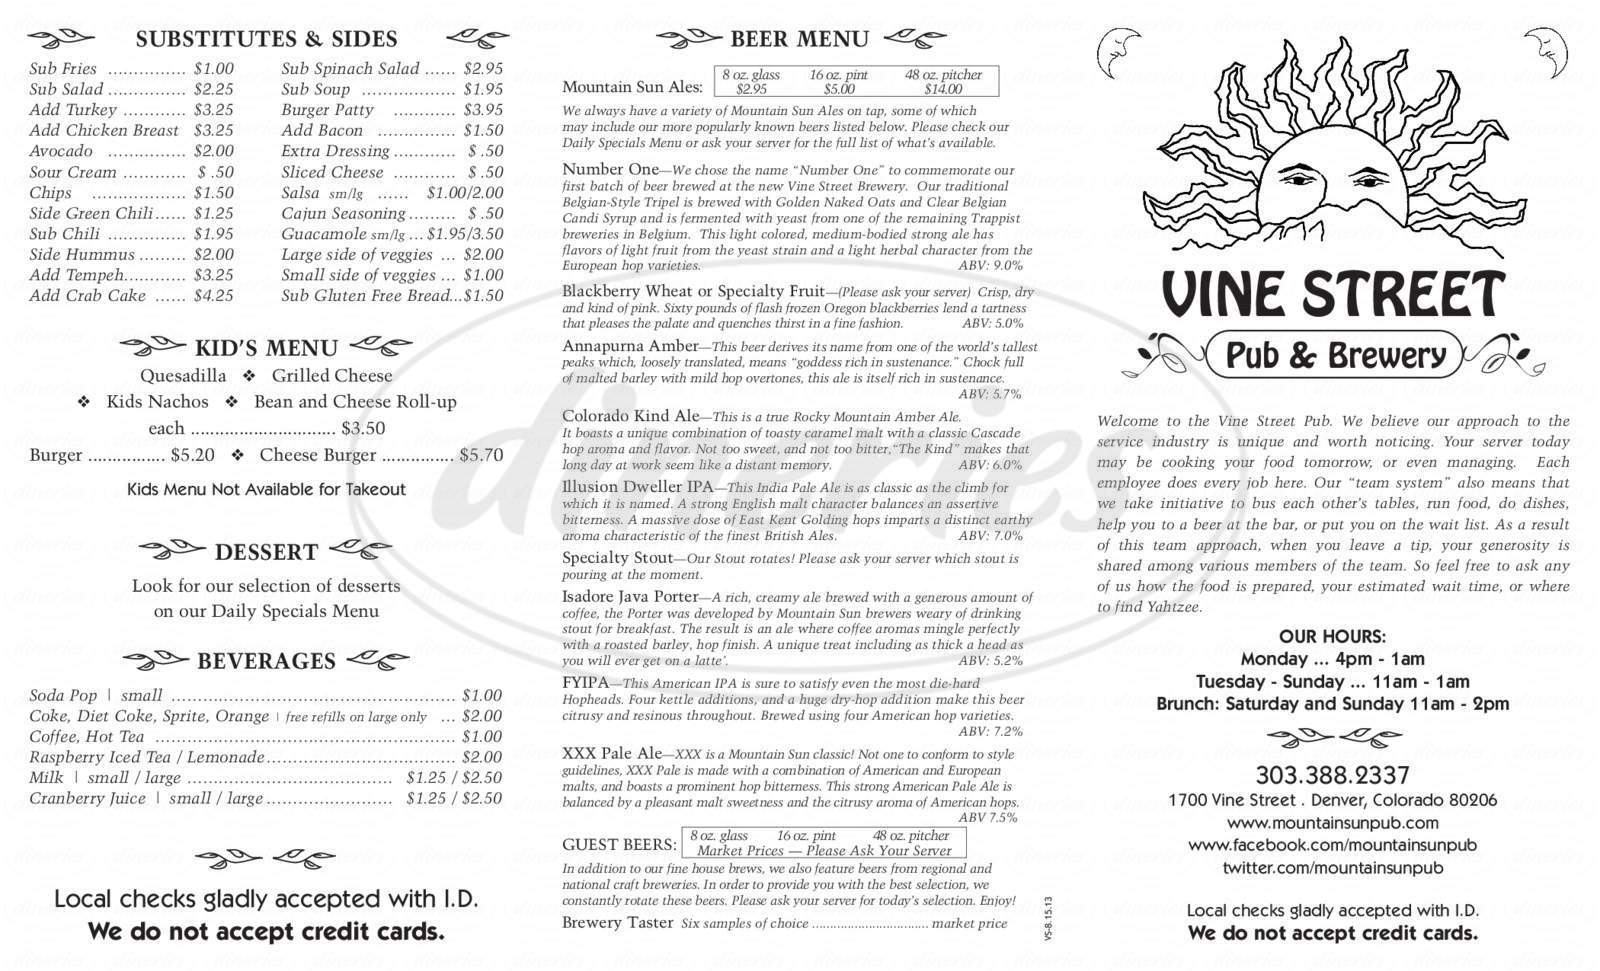 menu for Vine Street Pub & Brewery